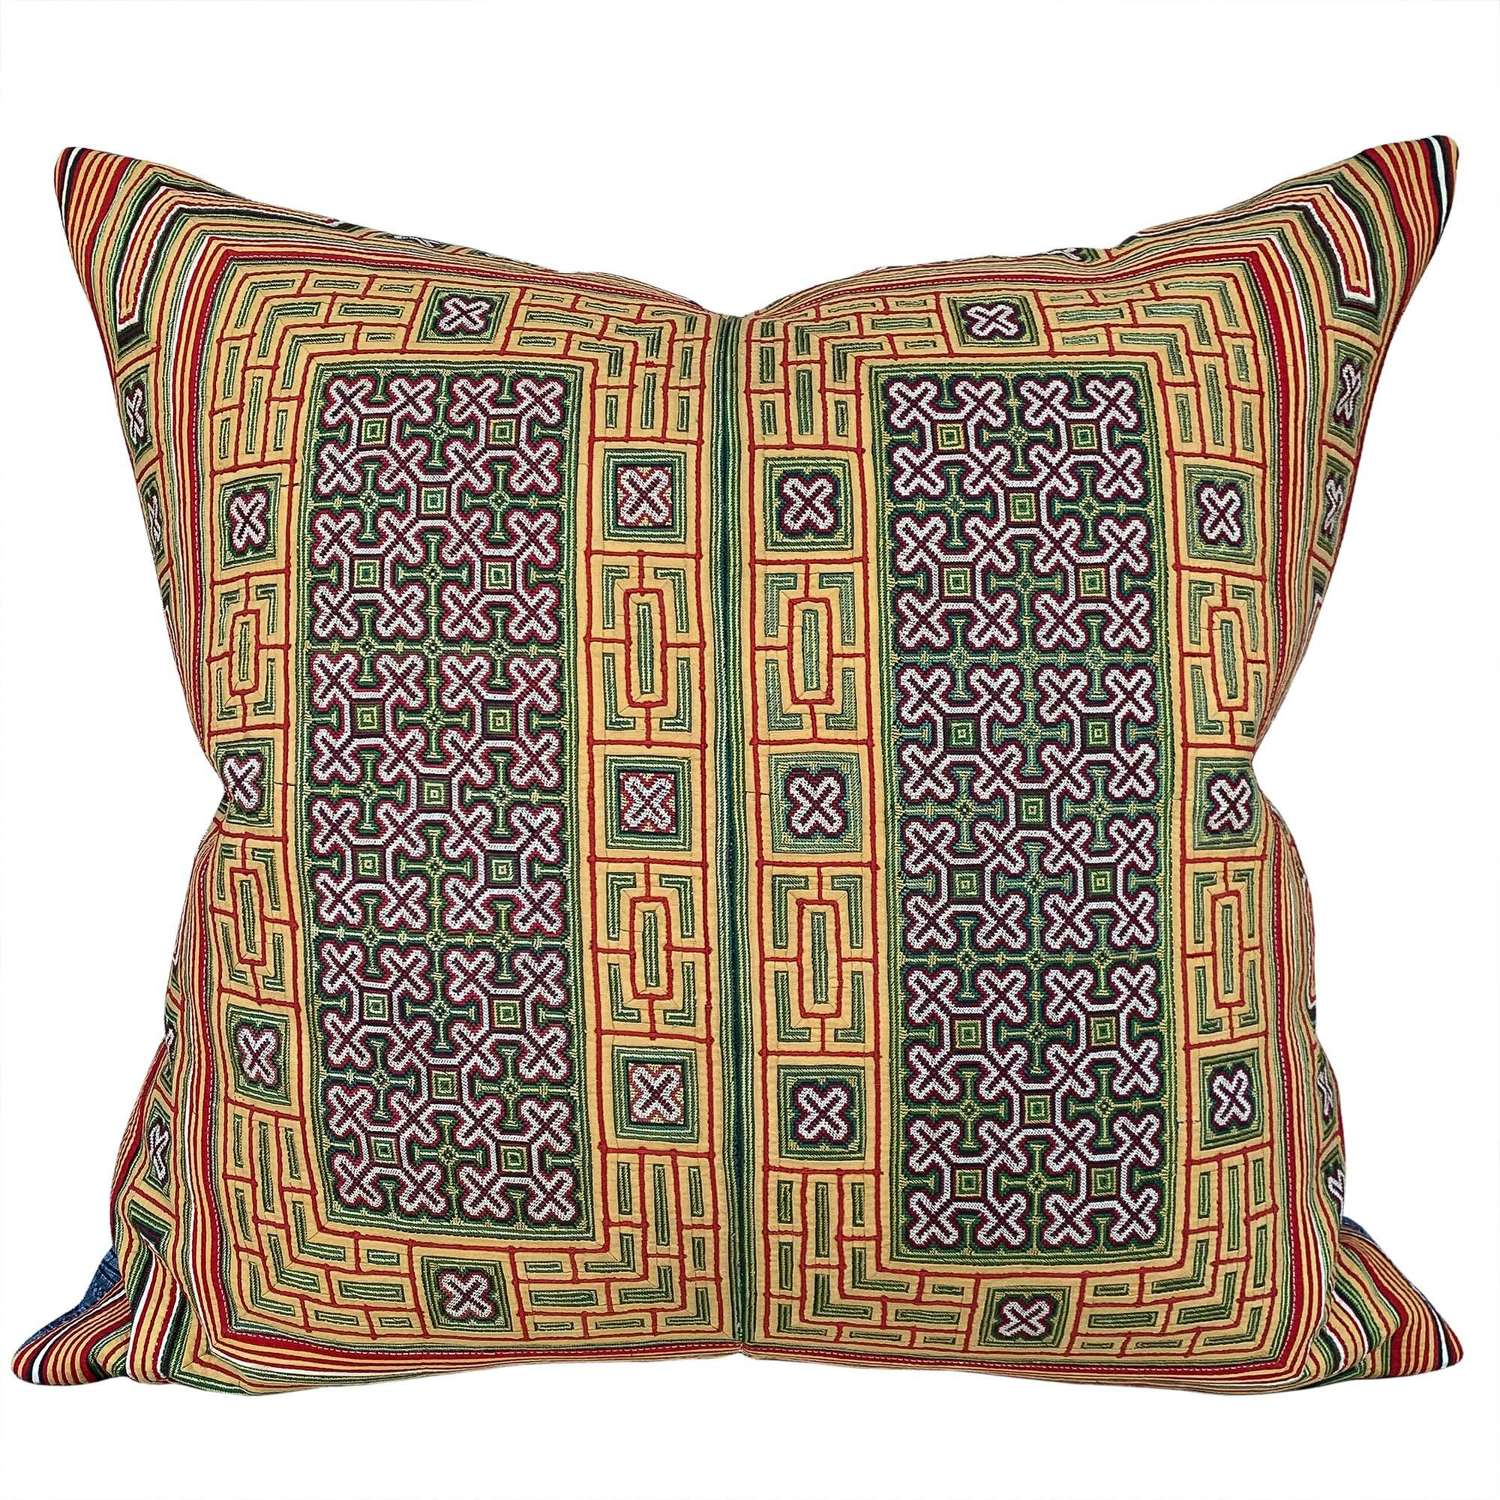 Miao collar cushion